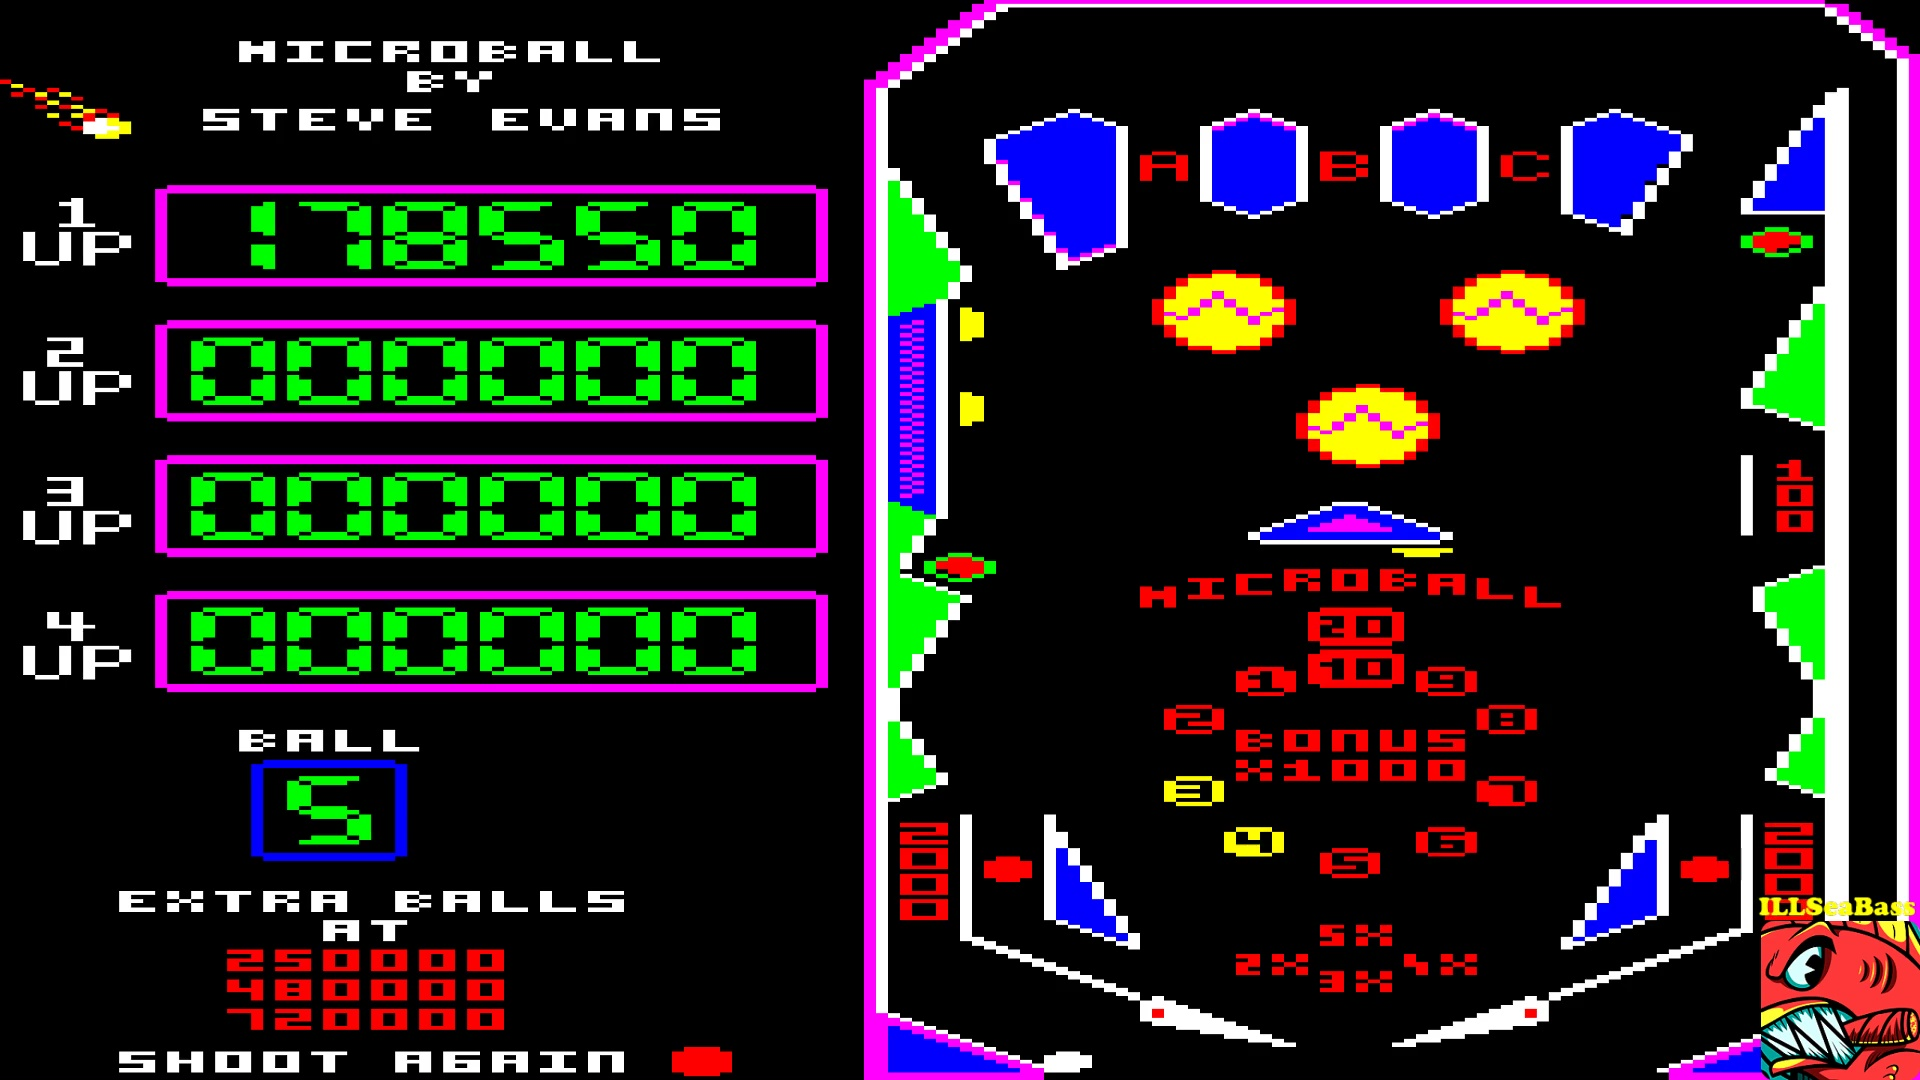 ILLSeaBass: MicroBall (BBC Micro Emulated) 178,550 points on 2017-10-11 23:22:41